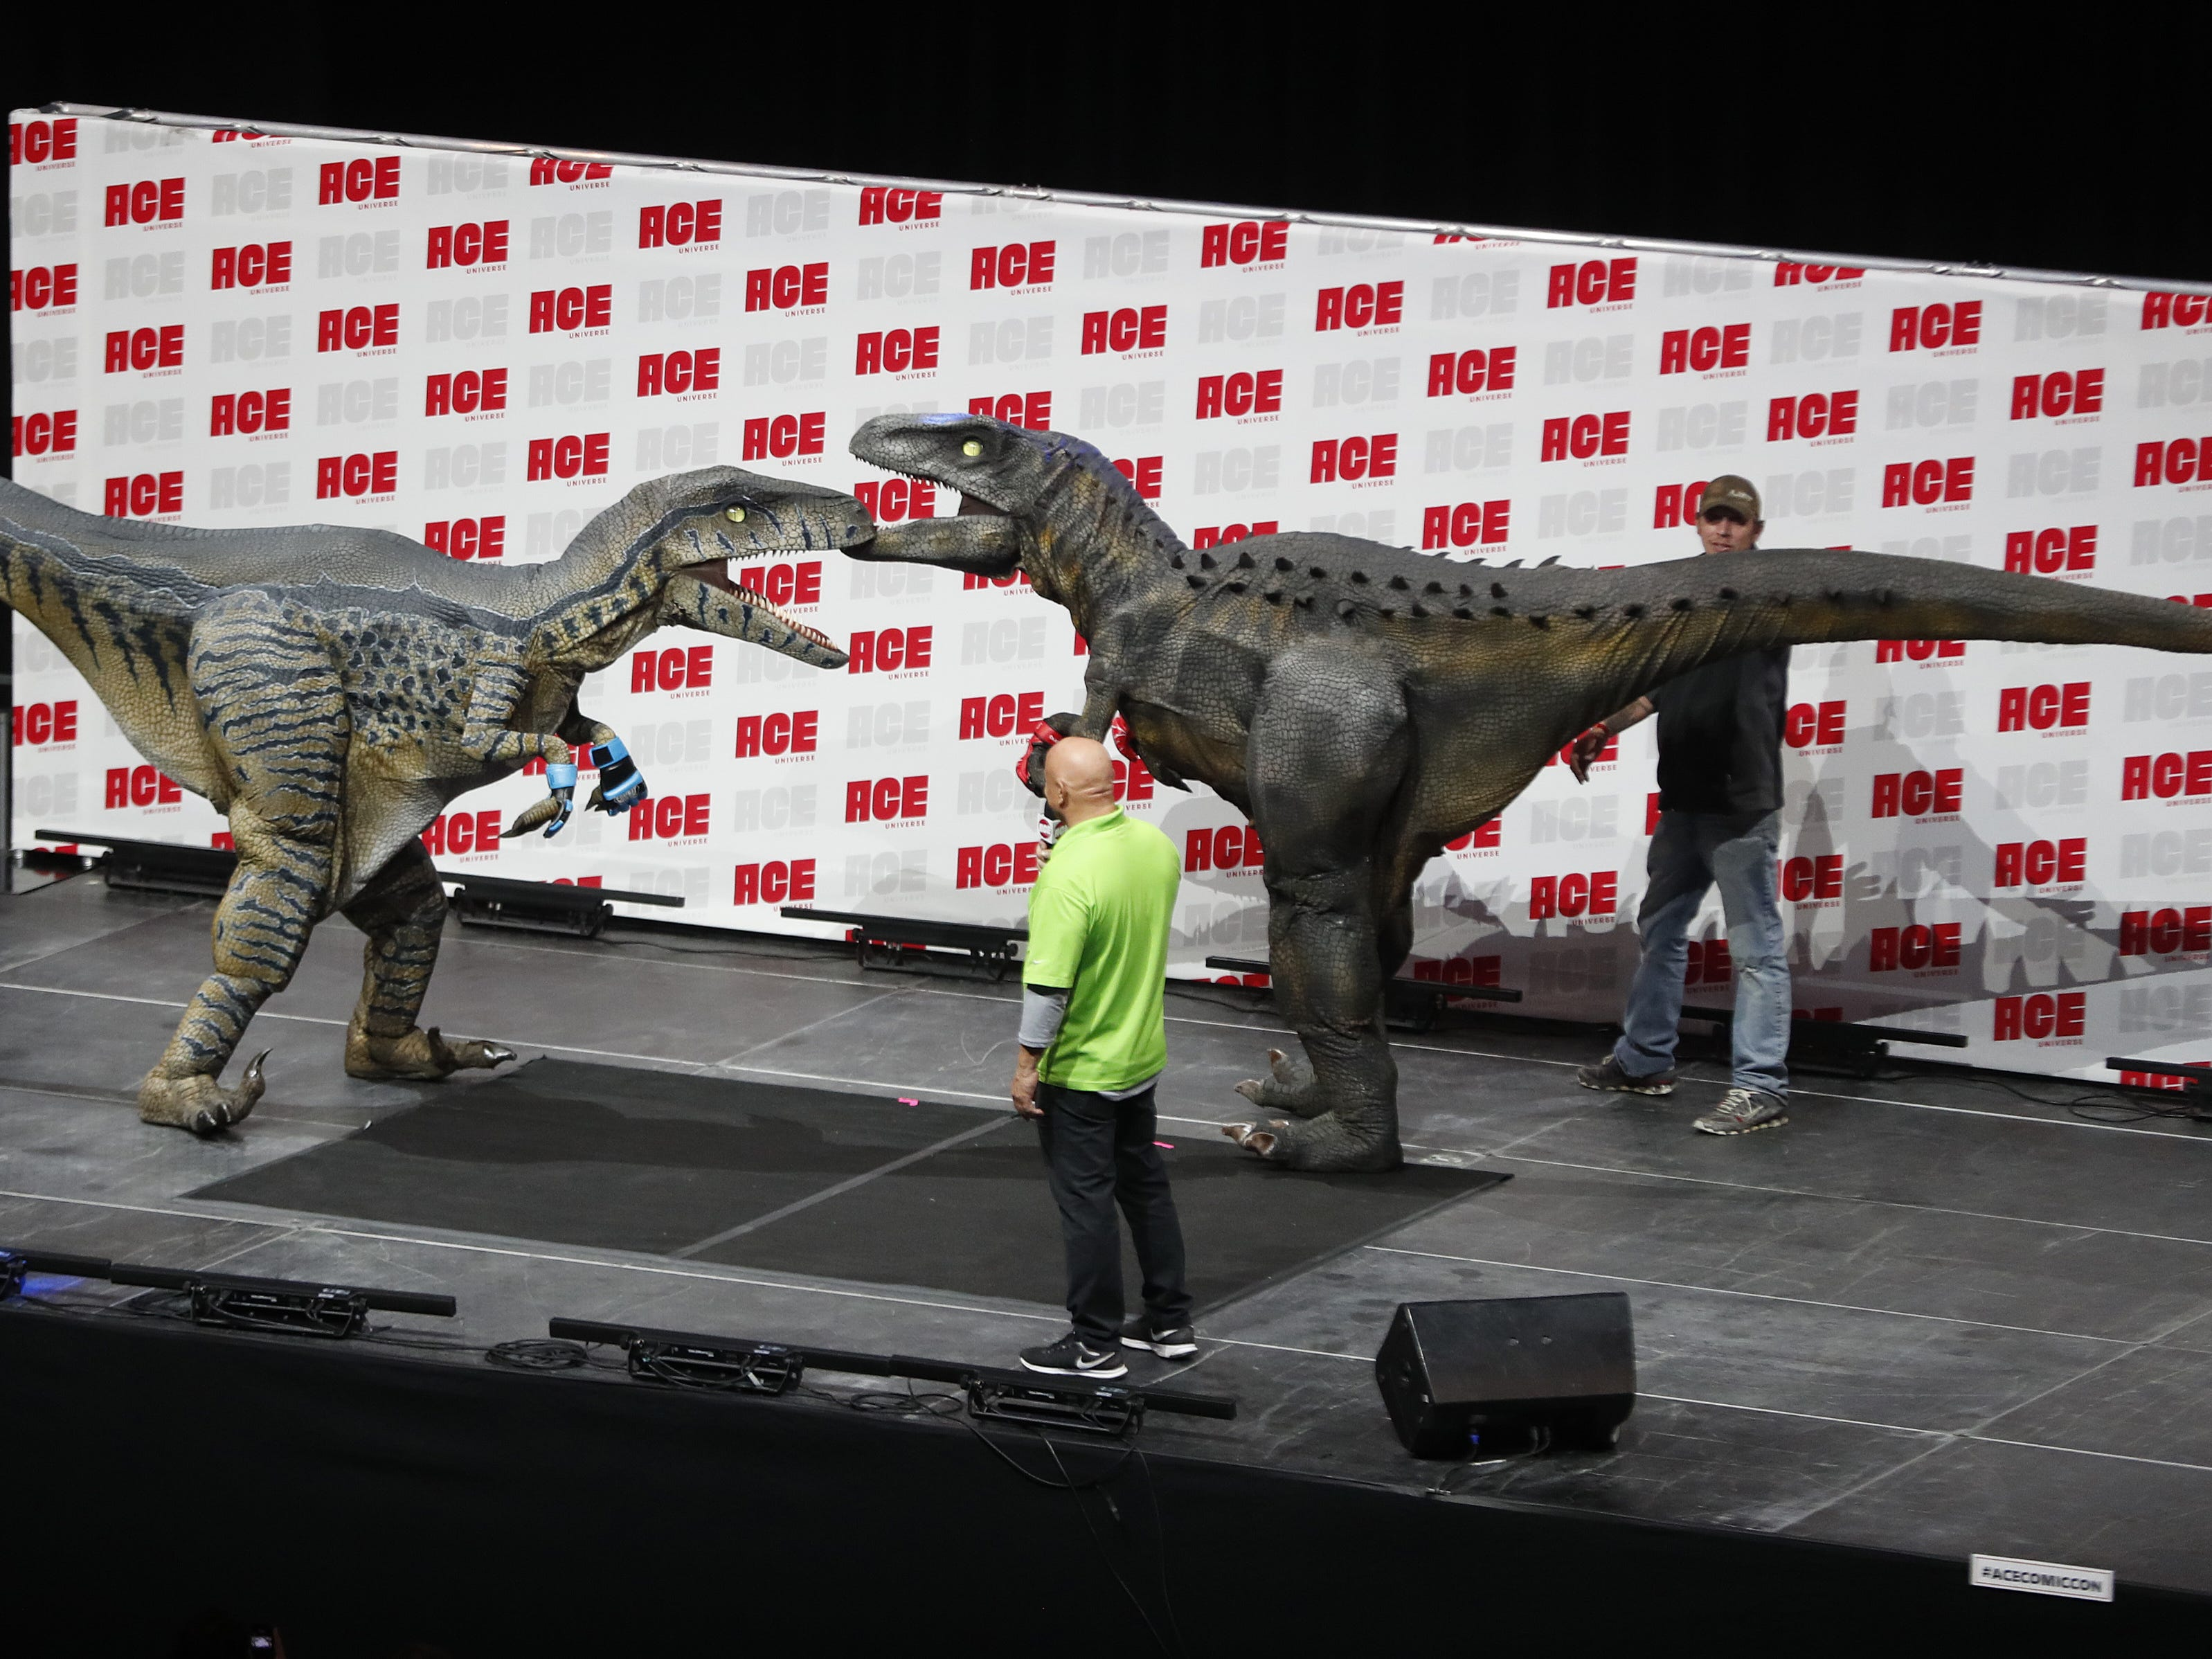 Two dinosaurs take the main stage for a mock fight promoting Jurassic Fight Night in February during the opening day of Ace Comic Con 2019 at Gila River Arena in Glendale, Ariz. on Jan. 11, 2019.